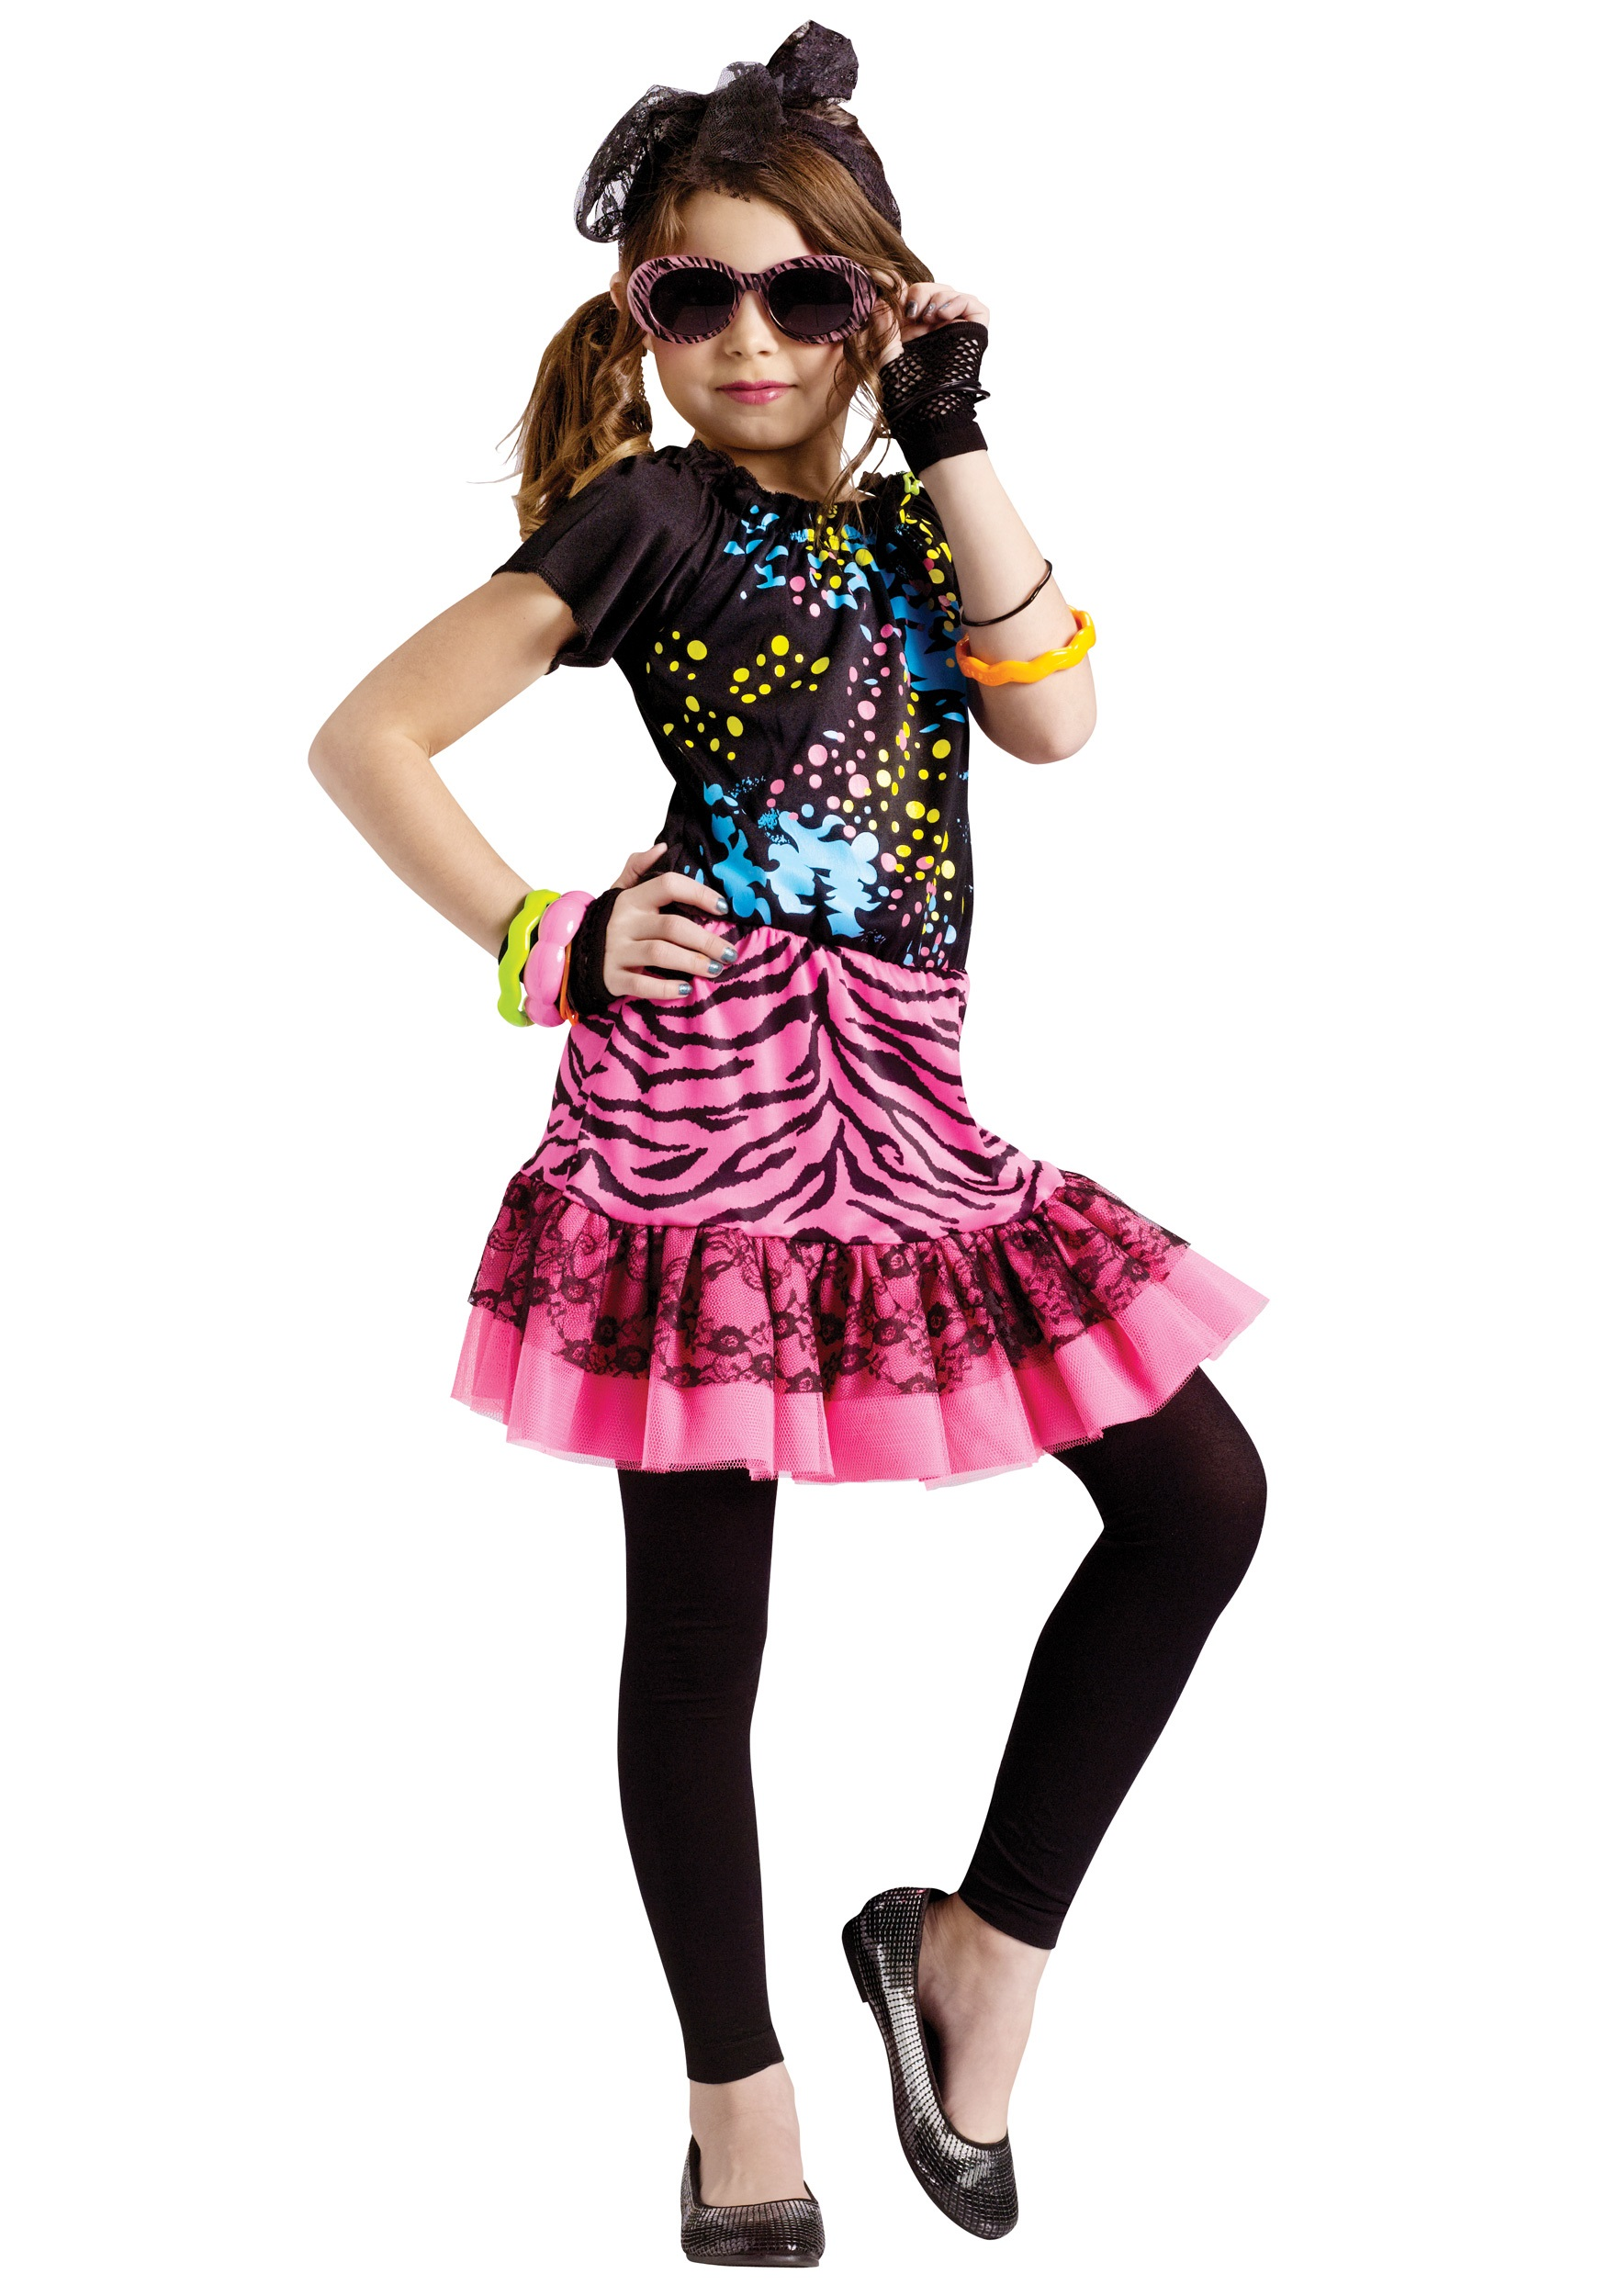 366d2b2aec 80s Pop Party Kids Costume - Halloween Costumes